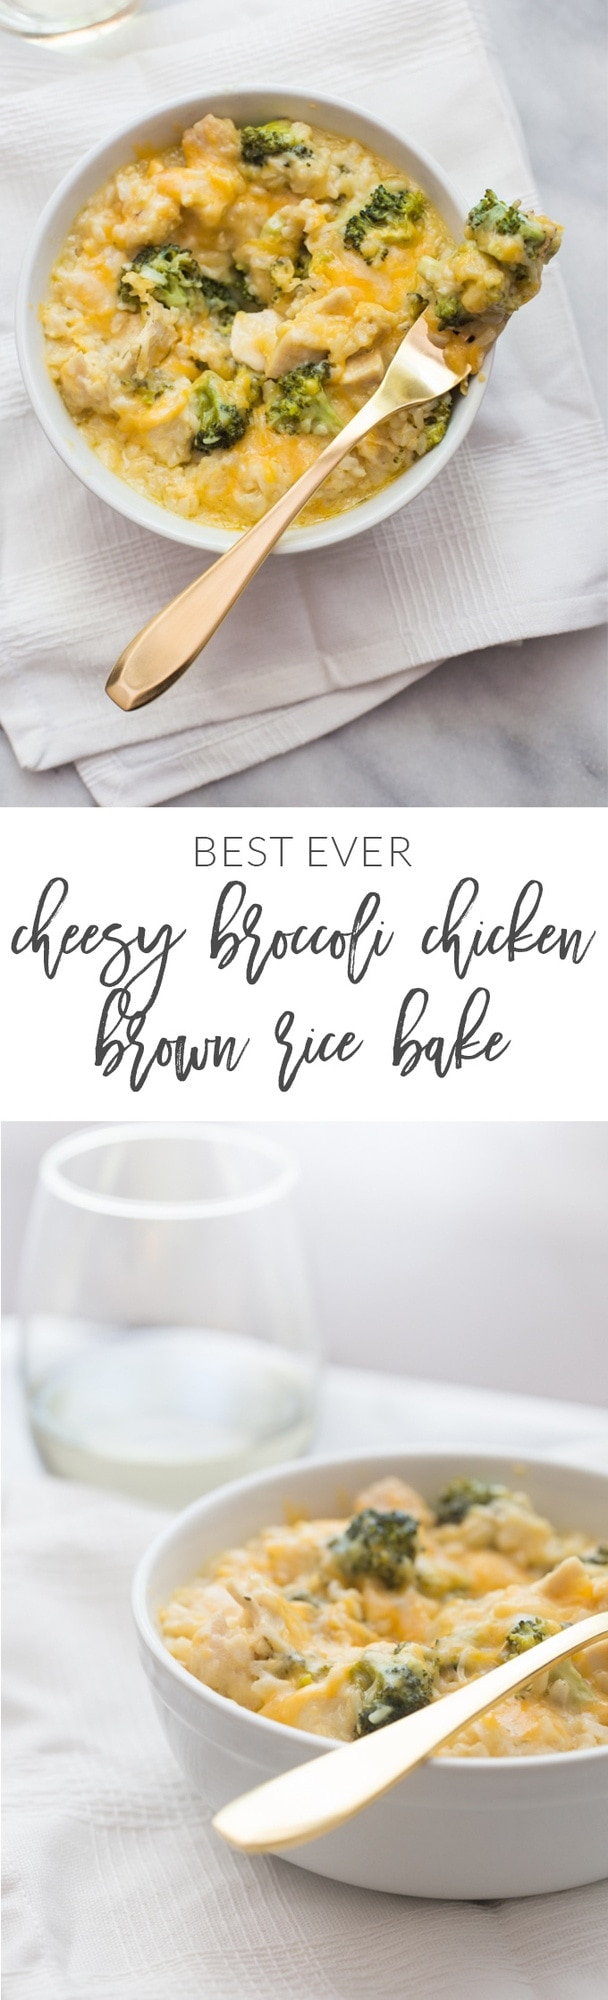 Cheesy broccoli chicken brown rice bake. The best broccoli chicken rice casserole you've ever had (and will ever have.. dangit!) // 40 Aprons